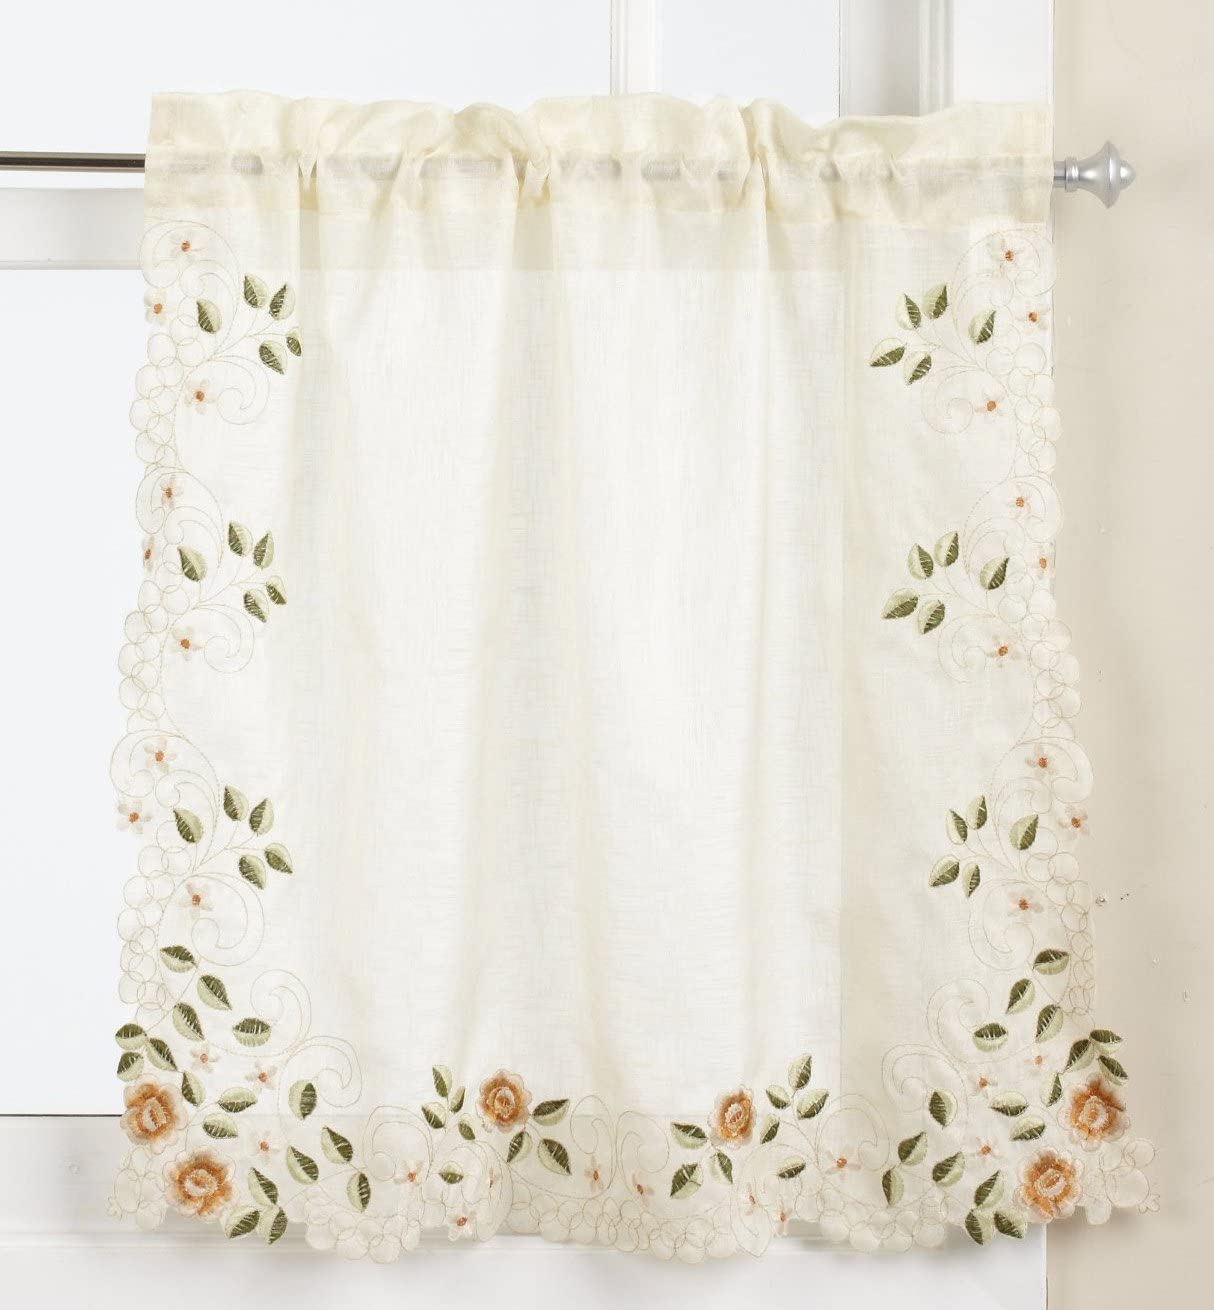 LORRAINE HOME FASHIONS Rosemary Tier Curtain Pair, 58 by 36-Inch, Linen